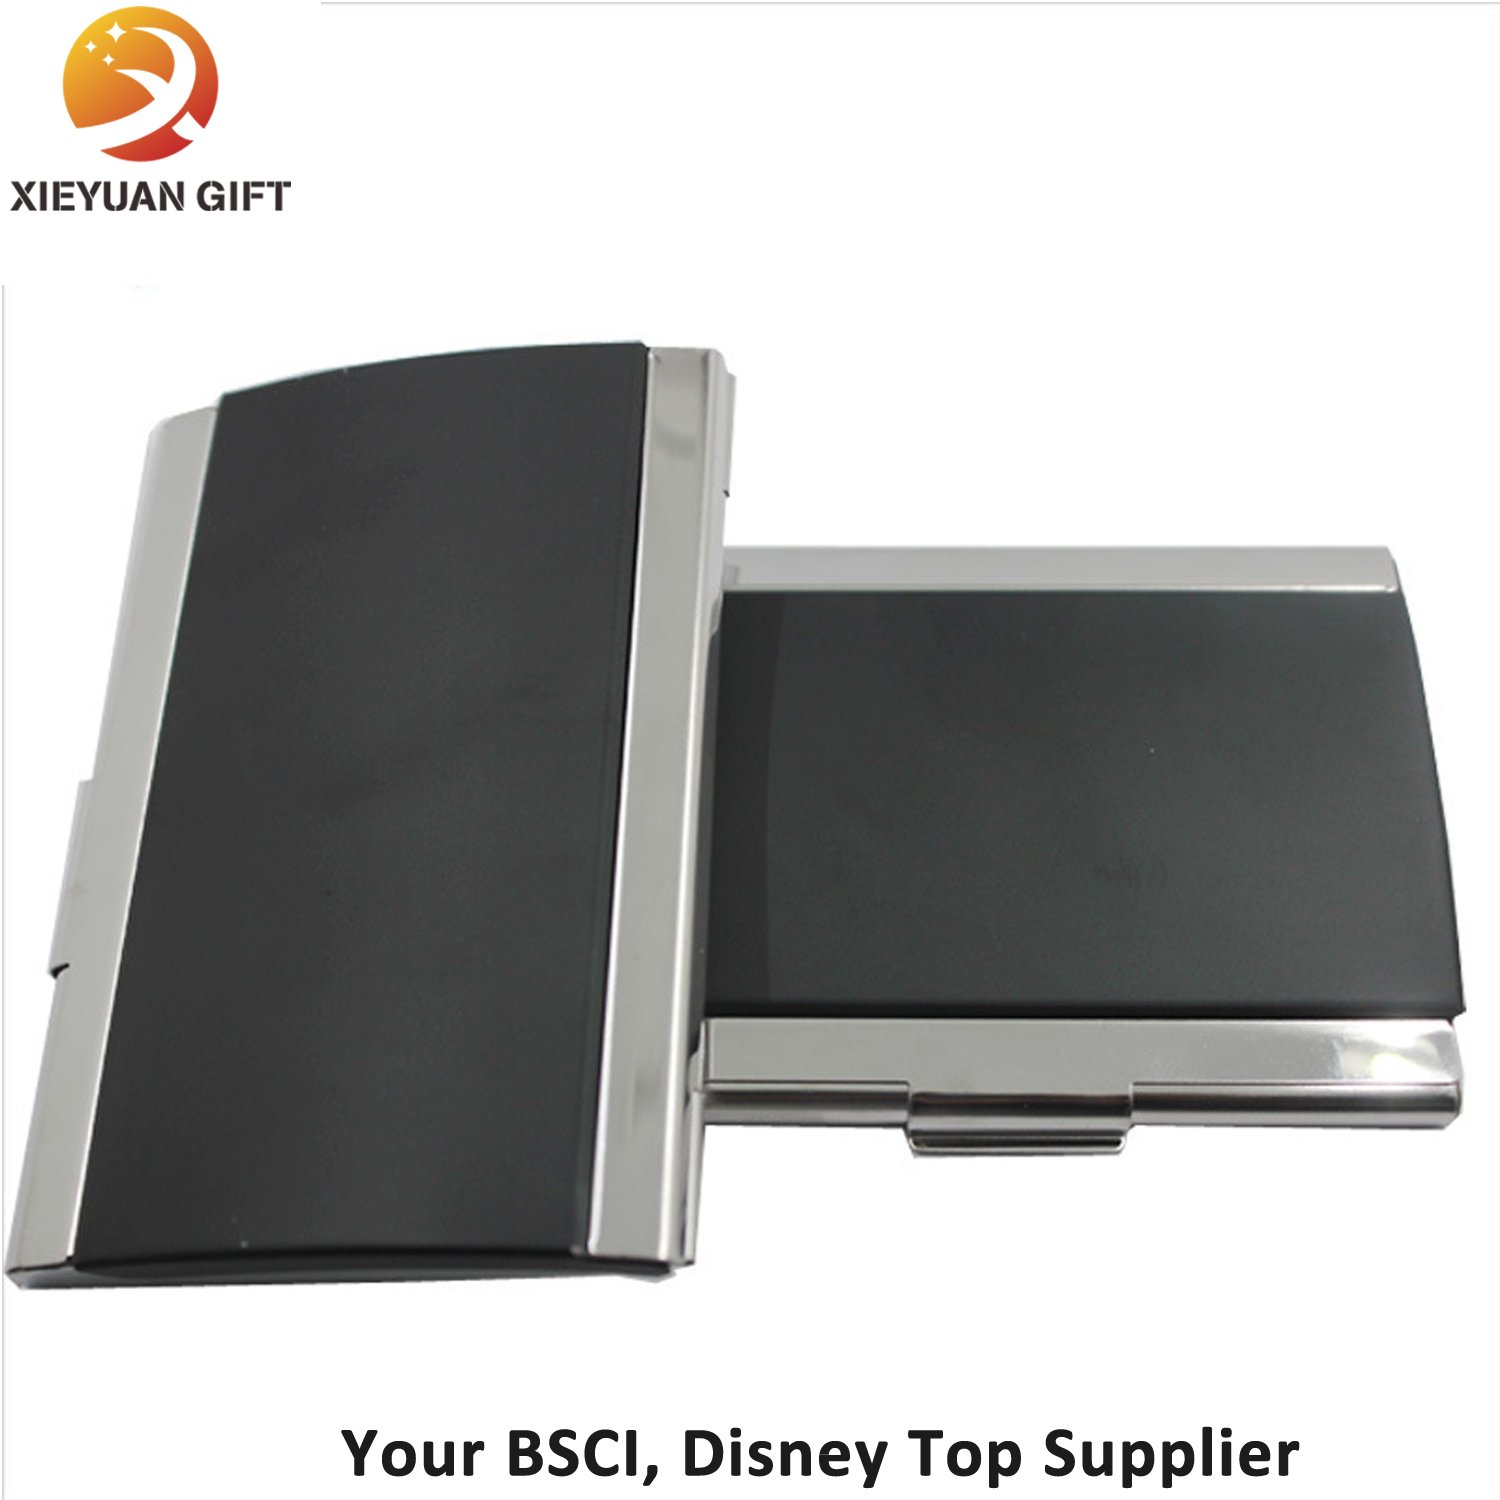 PU Leather Business Journal Name Card Book Holder Black Color